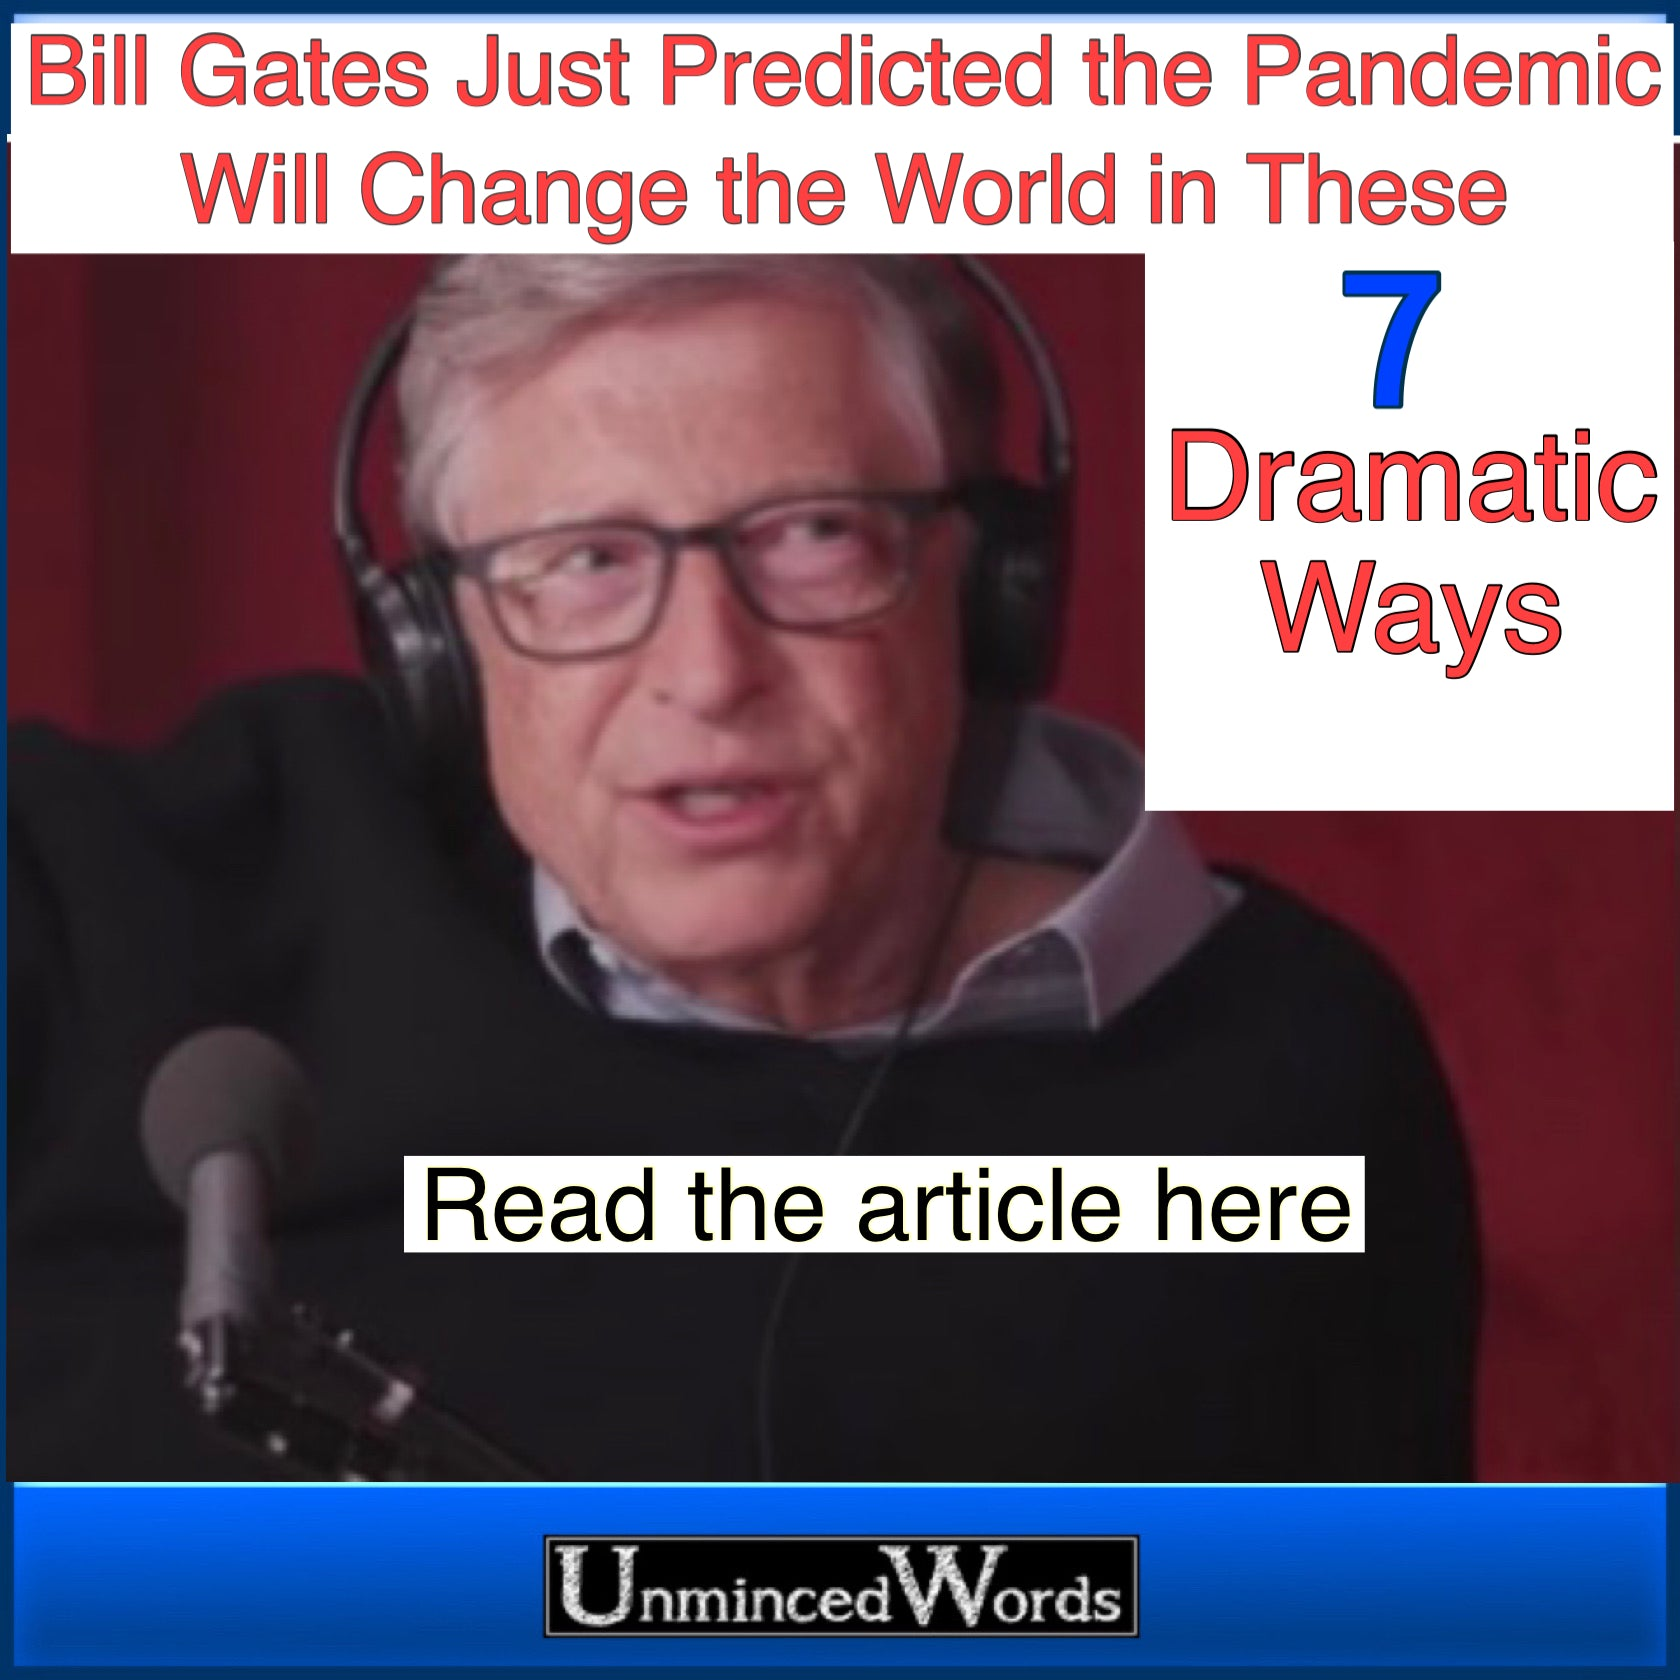 Bill Gates Just Predicted the Pandemic Will Change the World in These 7 Dramatic Ways